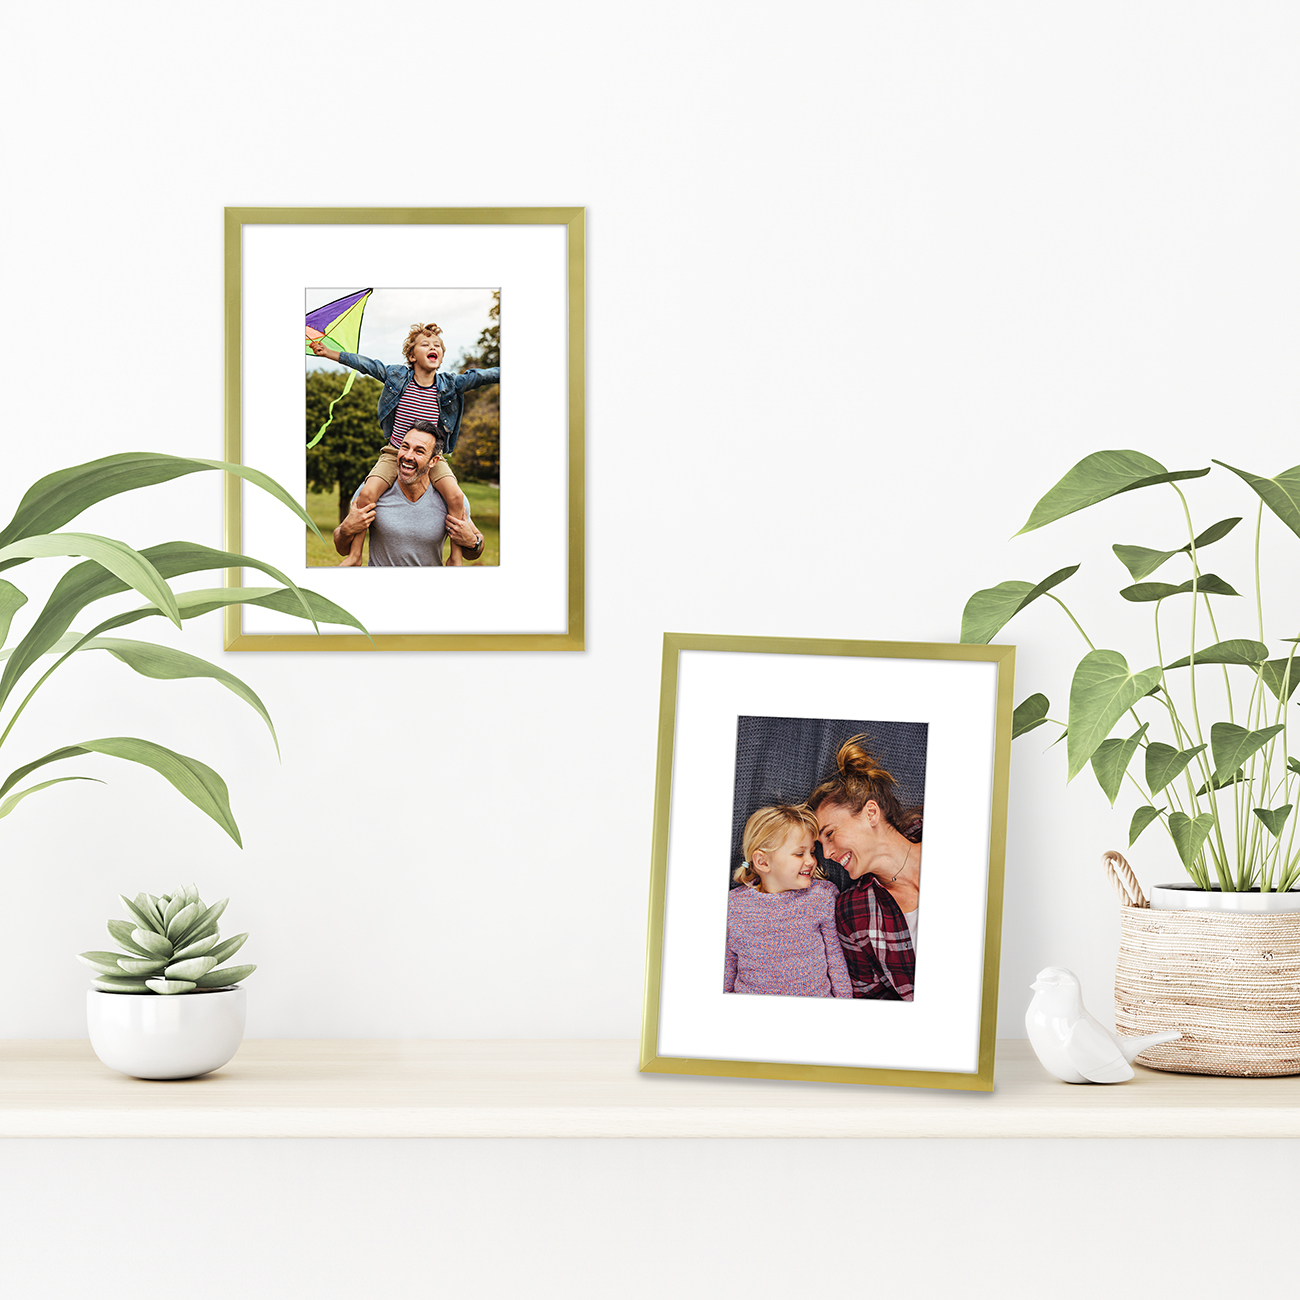 miniature 36 - Americanflat Thin Picture Frame 5x7 8x10 11x14 8.5x11 Wall Tabletop Pick Color